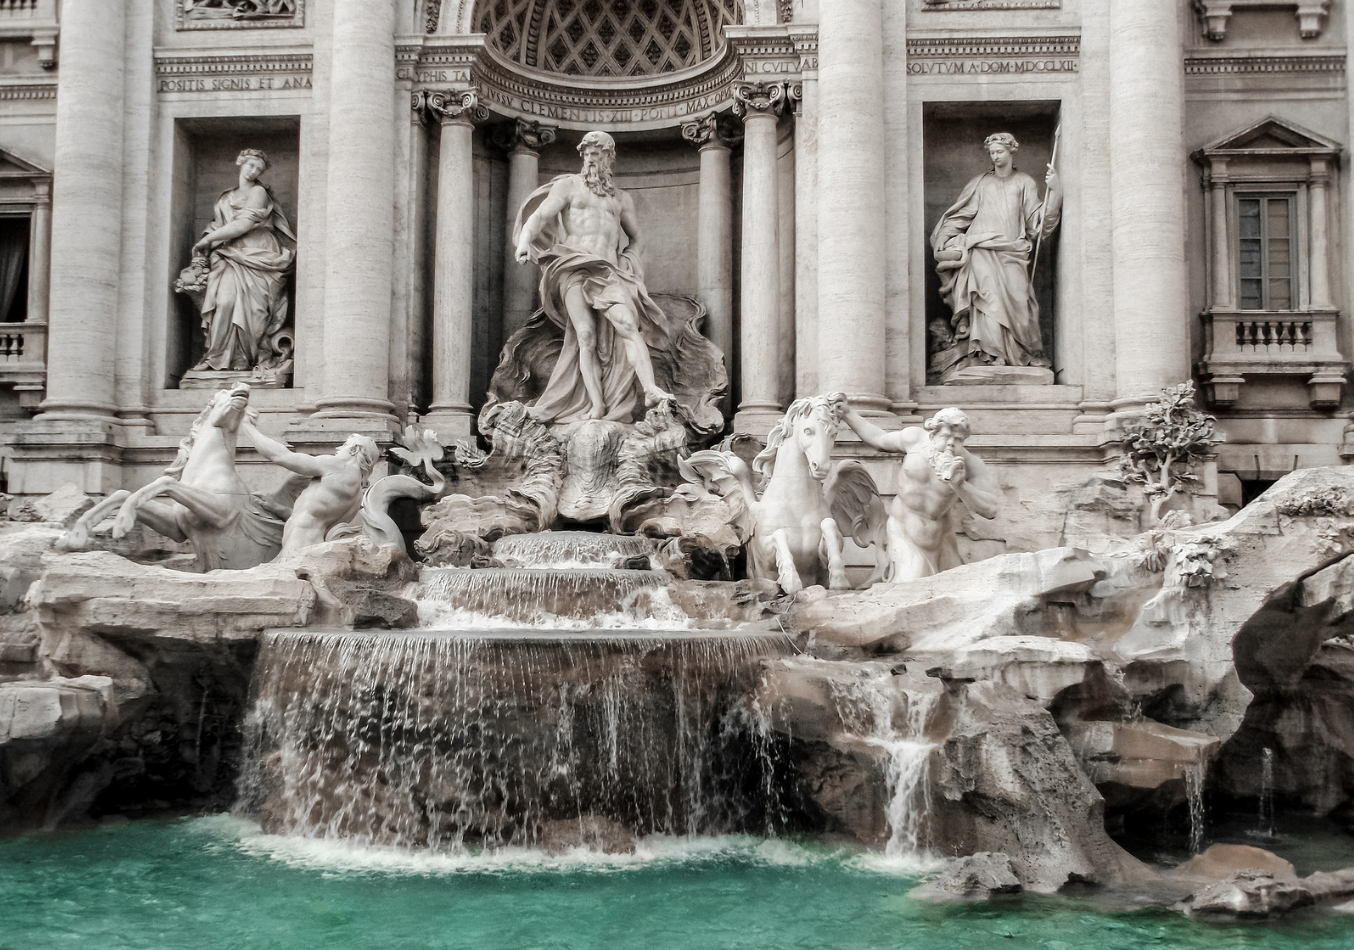 A stunning piece of art. The Trevi Fountain, which is in Rome, is one of the most popular spots to visit for tourists. For the school trip in 2020, students will get the chance to see the fountain first-hand on Day 3.